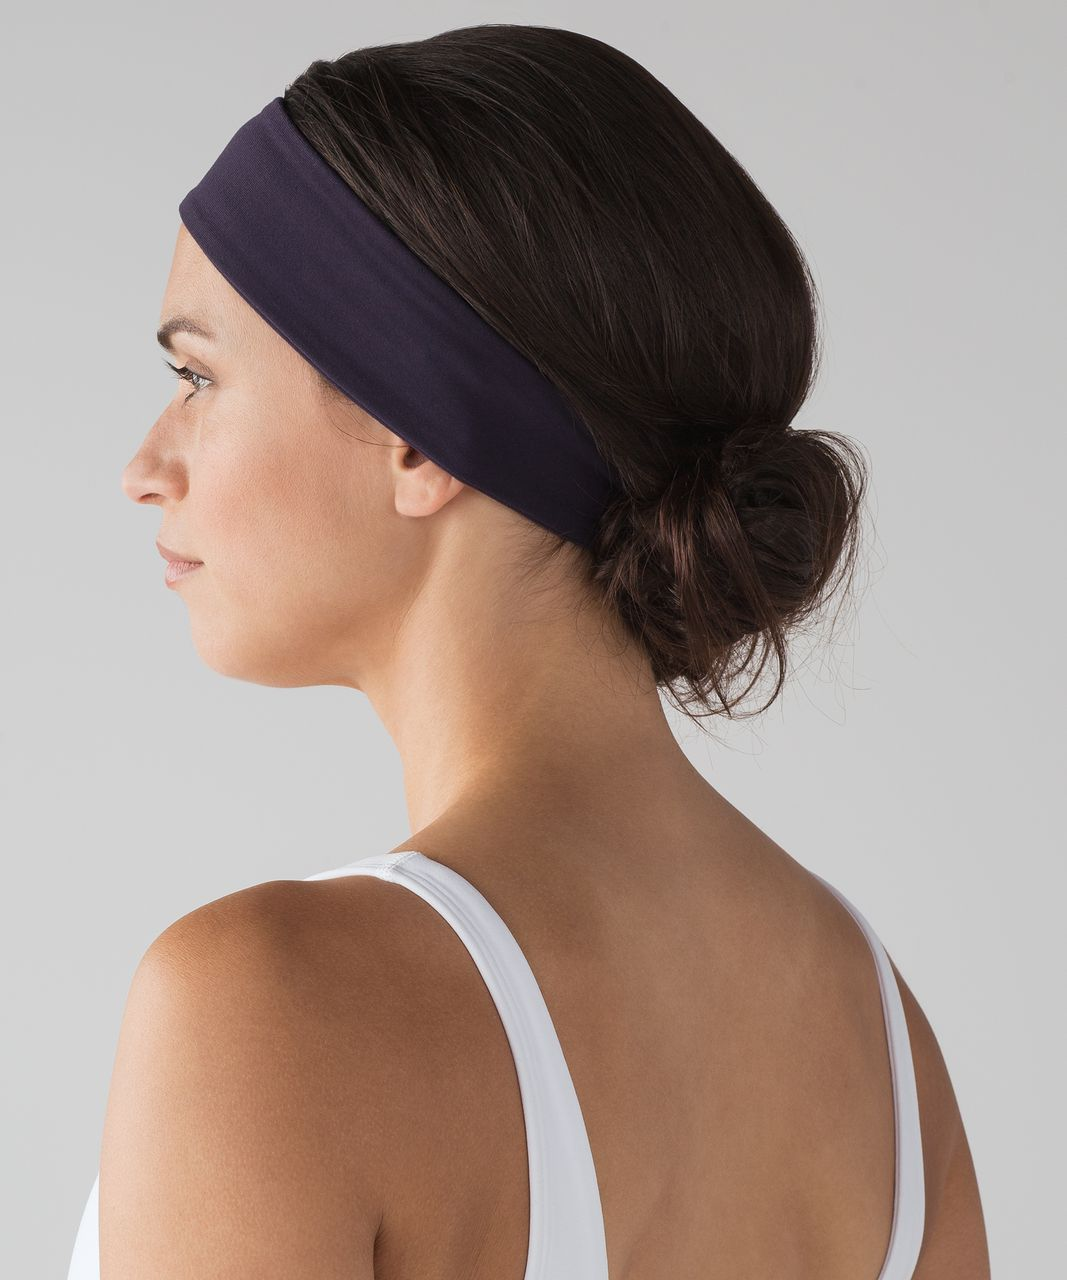 Lululemon Fly Away Tamer Headband II - Black Grape